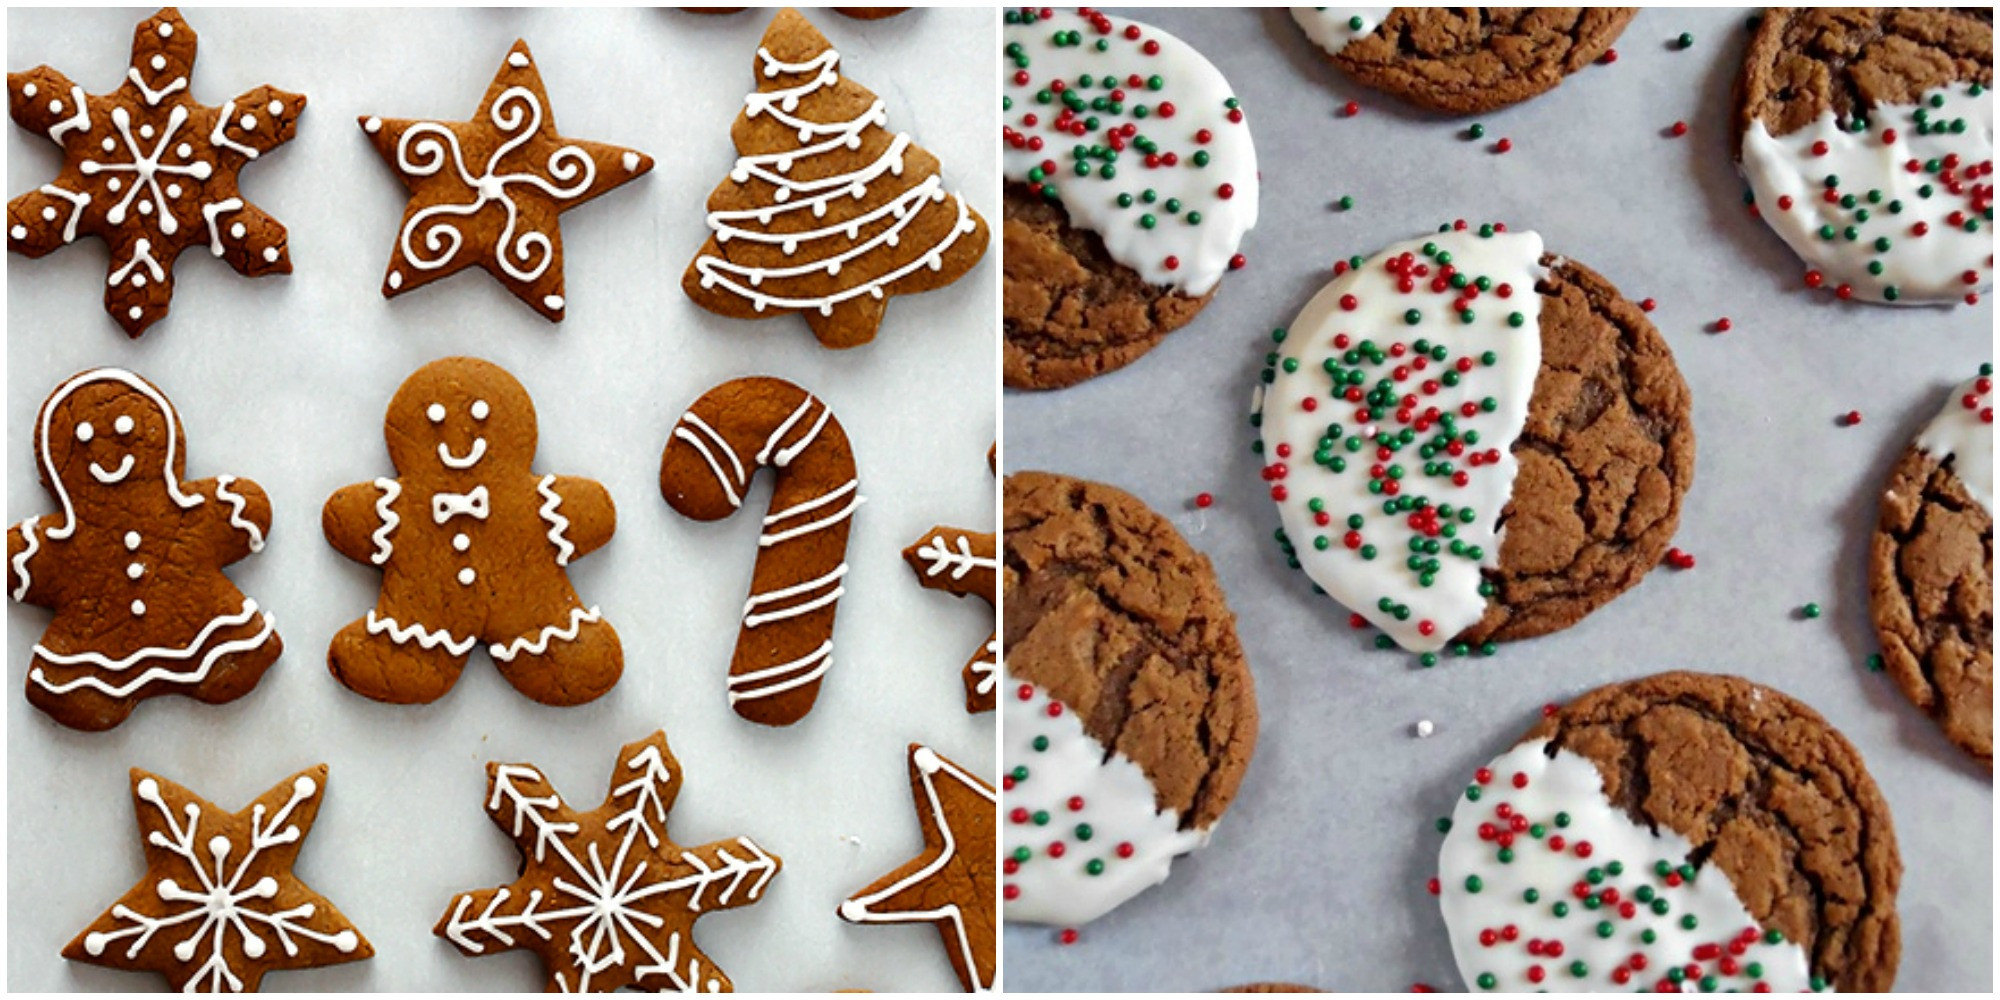 Good Housekeeping Christmas Cookies  24 Easy Gingerbread Cookie Recipes How to Make Homemade